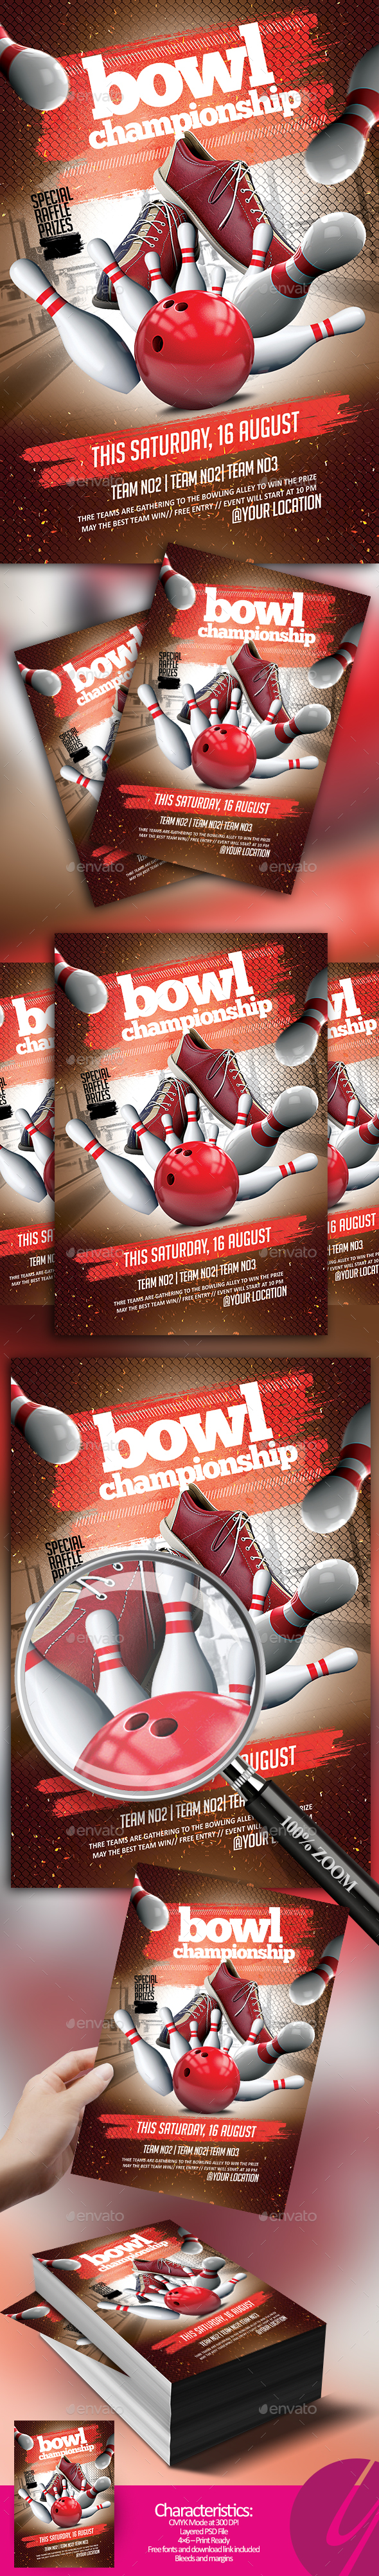 Bowl Championship Flyer - Sports Events